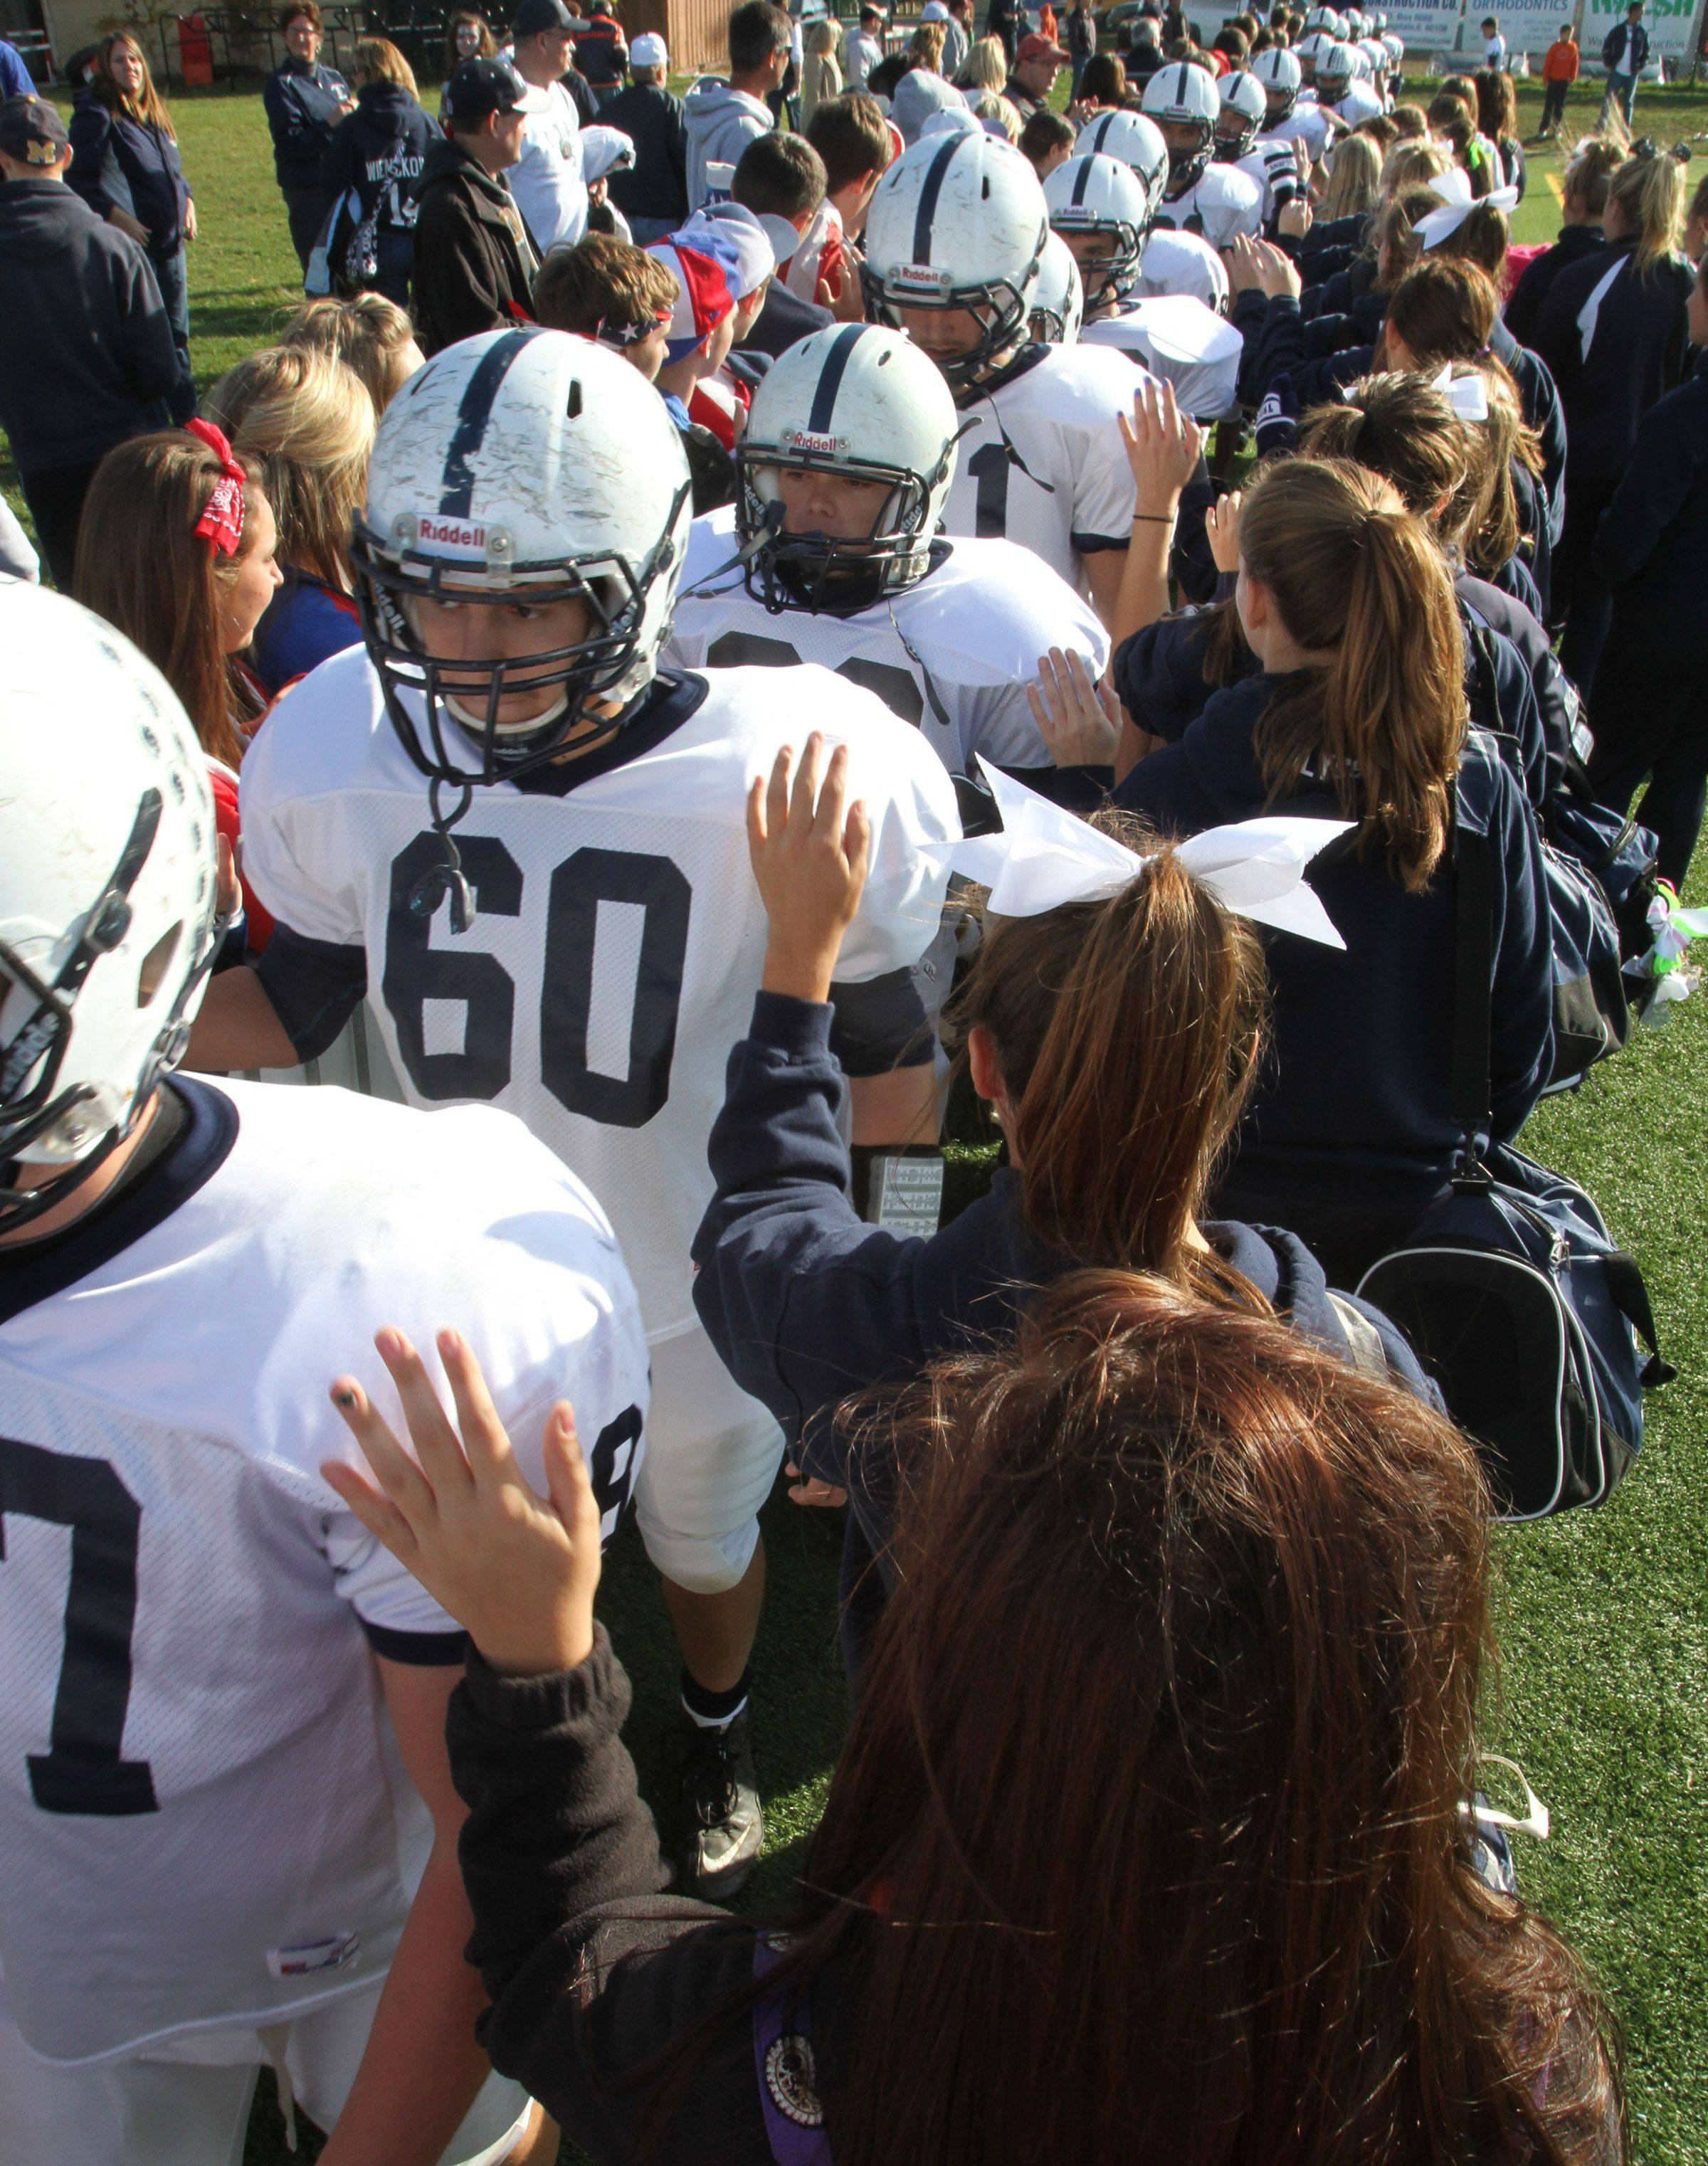 Cary-Grove receives a hand from student fans as they leave the field after losing to Nazareth Academy in LaGrange Park on Saturday, November 5th.